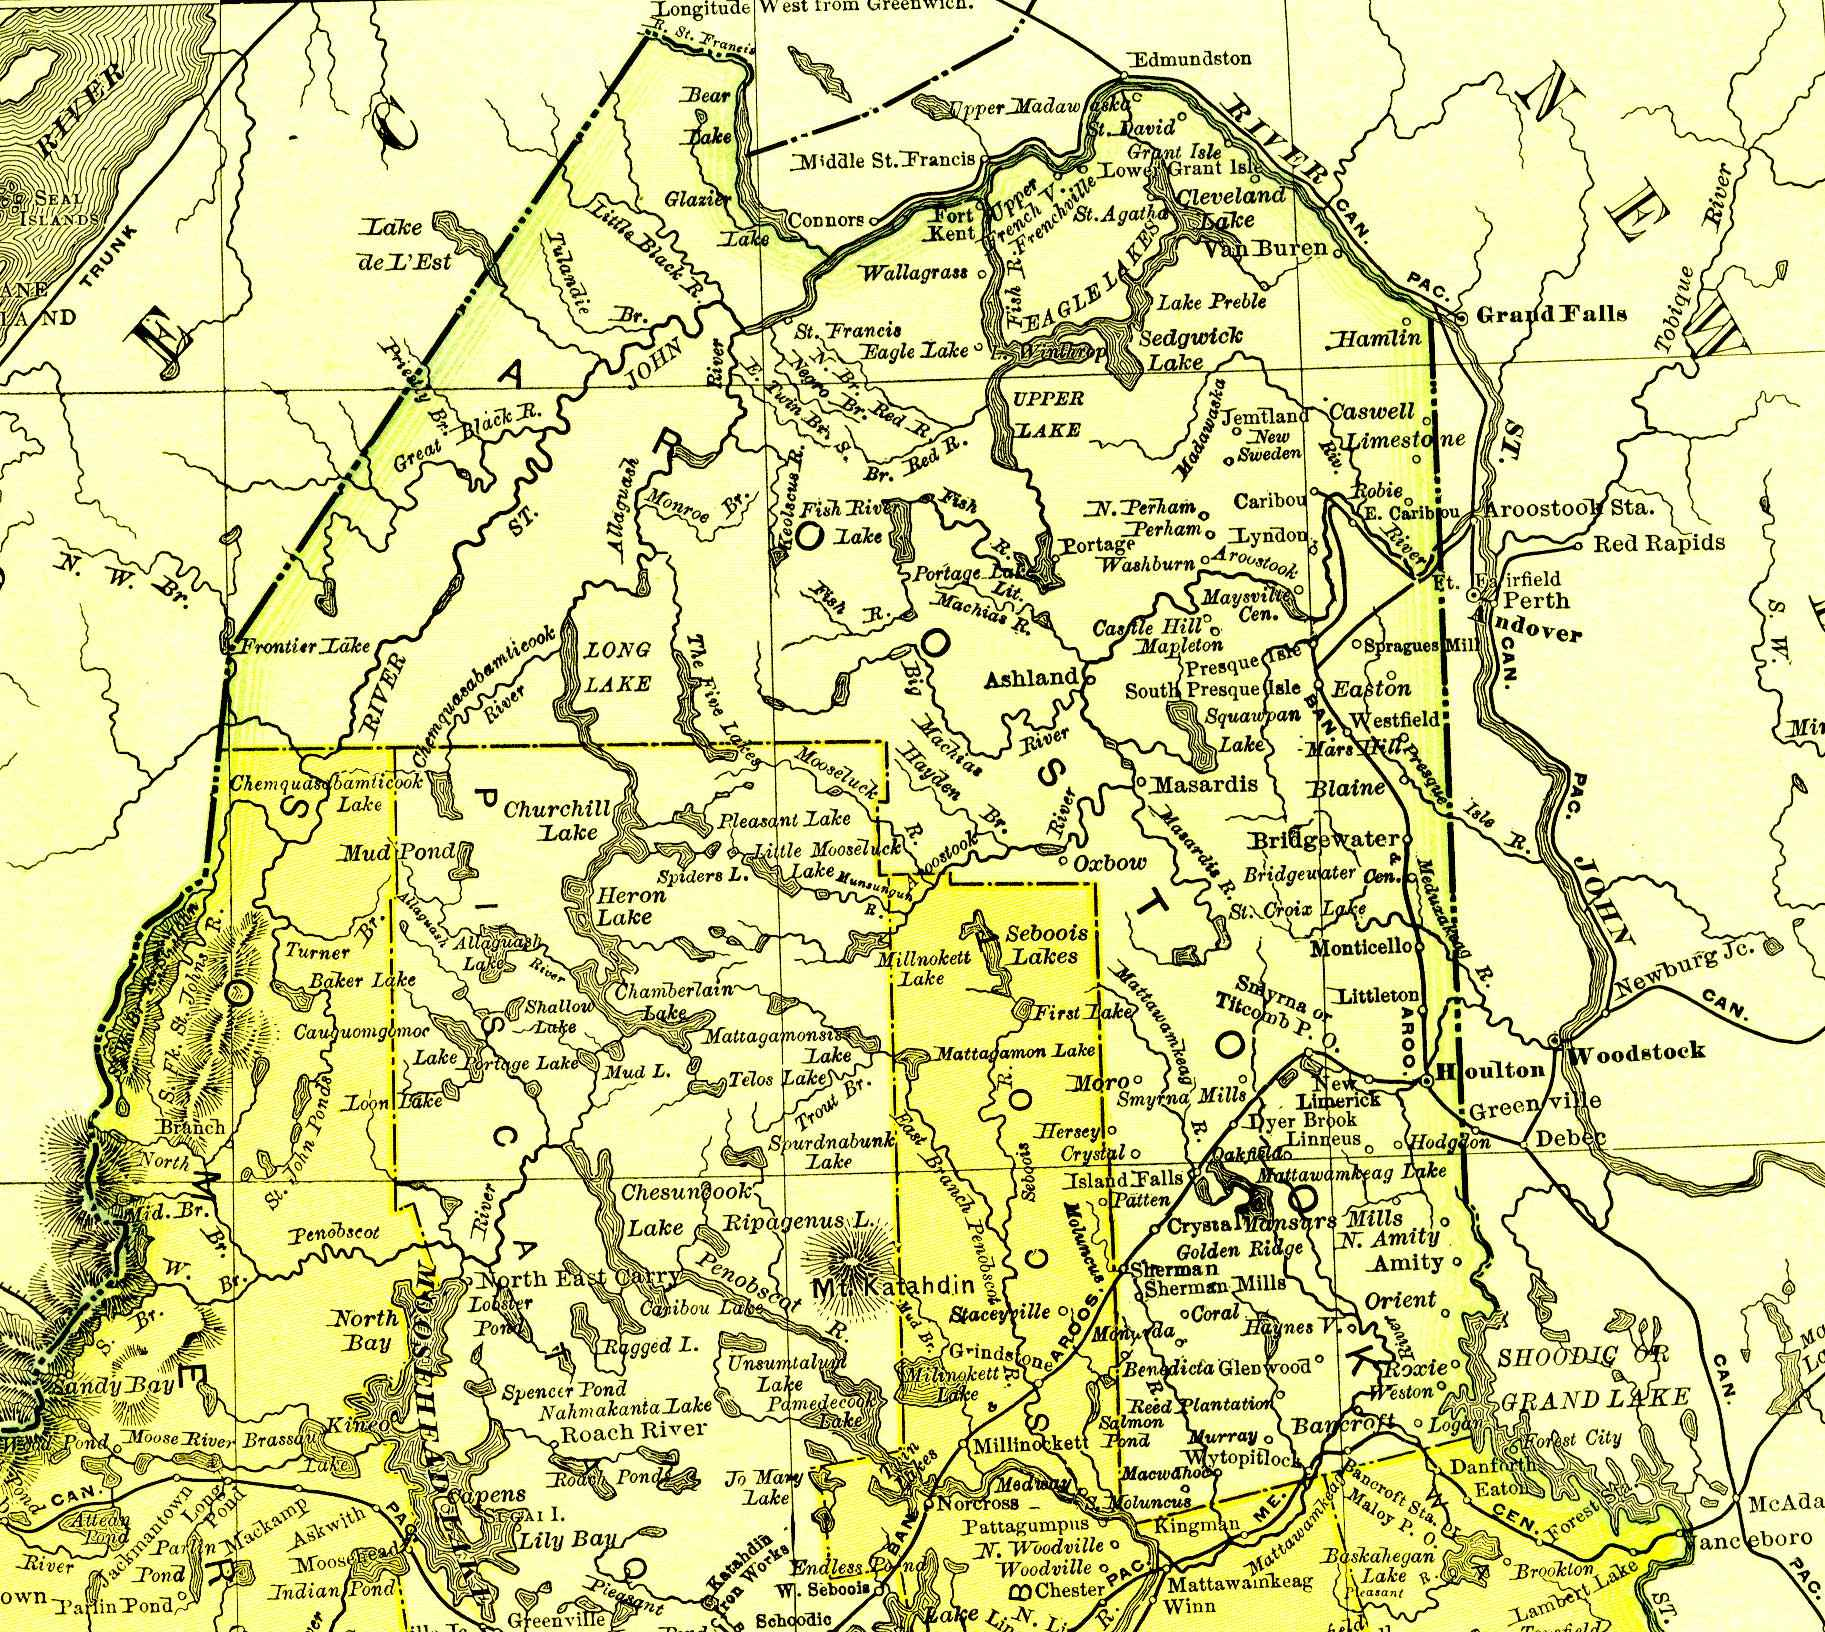 1895 Map of Aroostook County